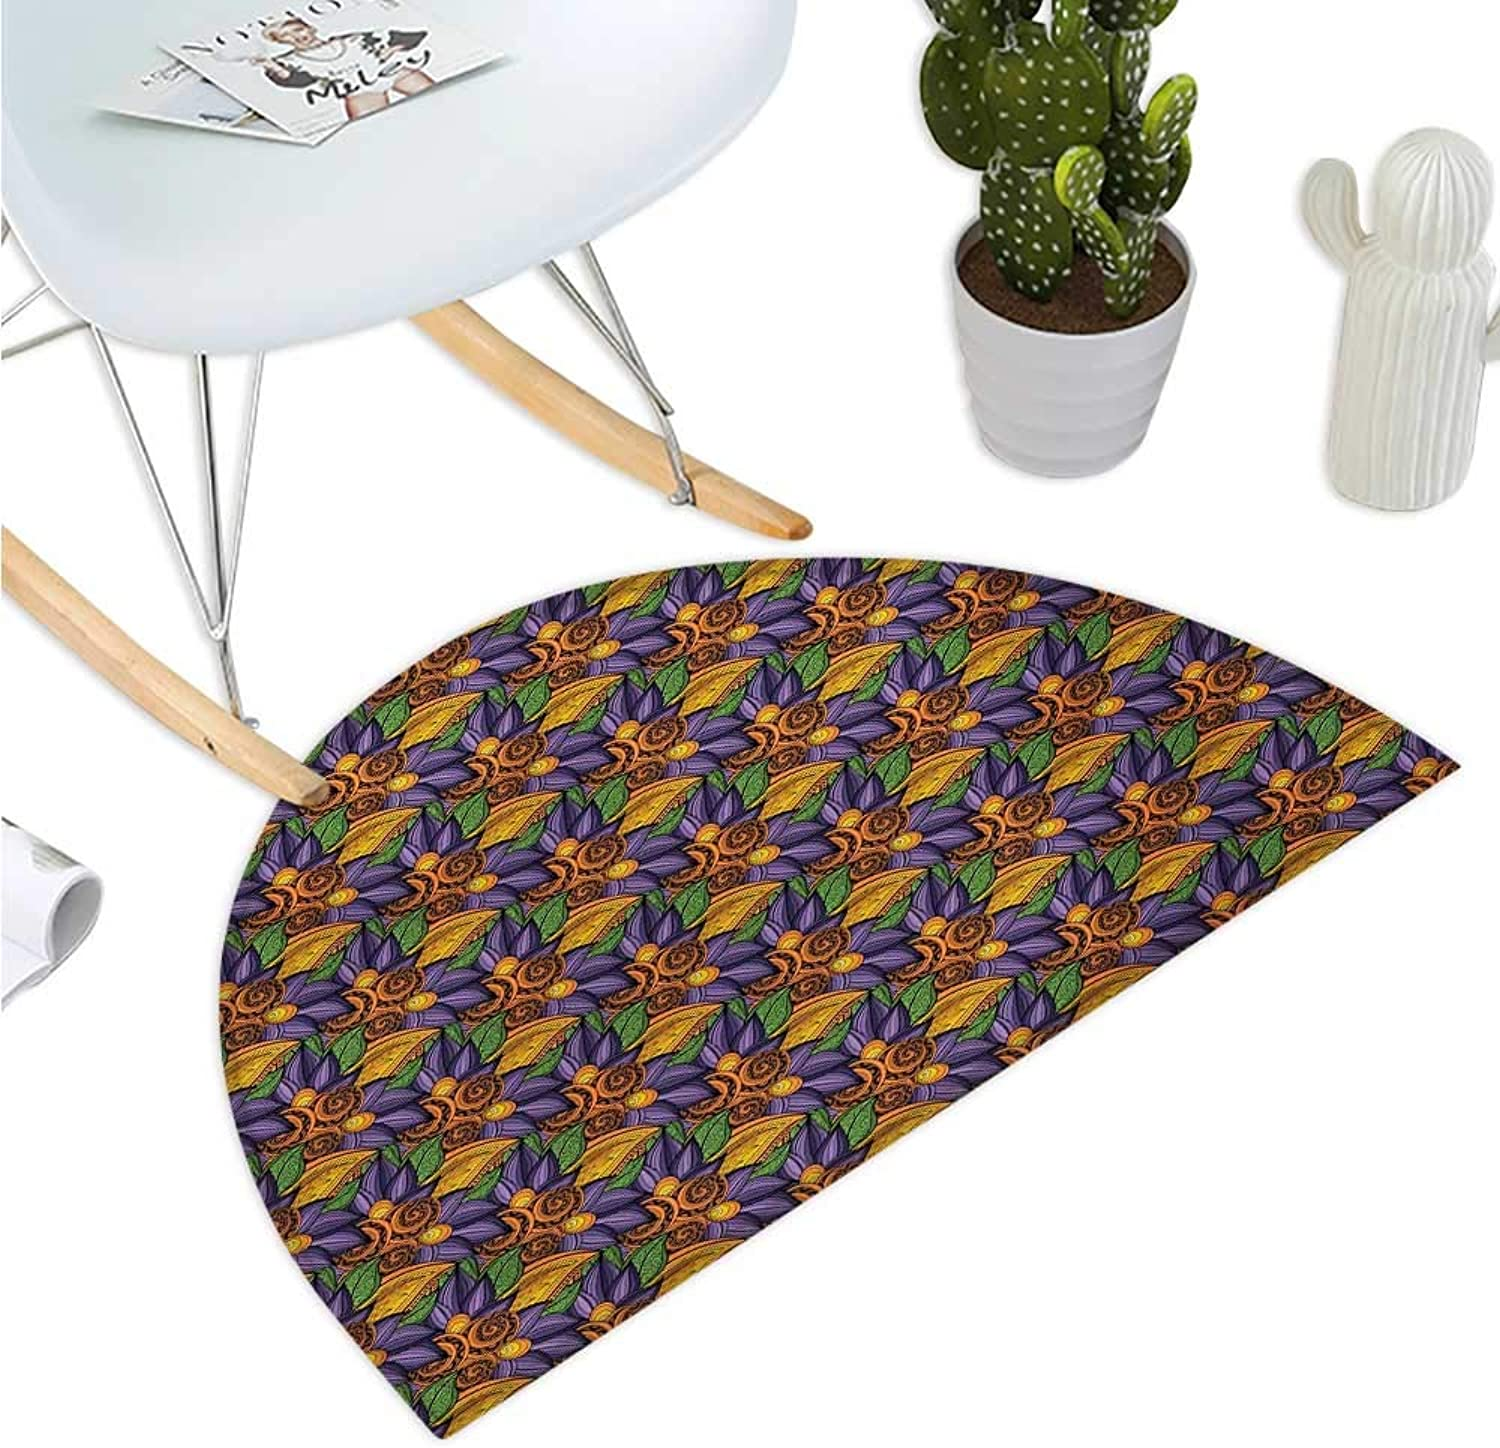 Leaf Semicircular Cushion Hand Drawn Floral Composition with Vibrant colors and Abstract Style Summer Nature Bathroom Mat H 35.4  xD 53.1  Multicolor